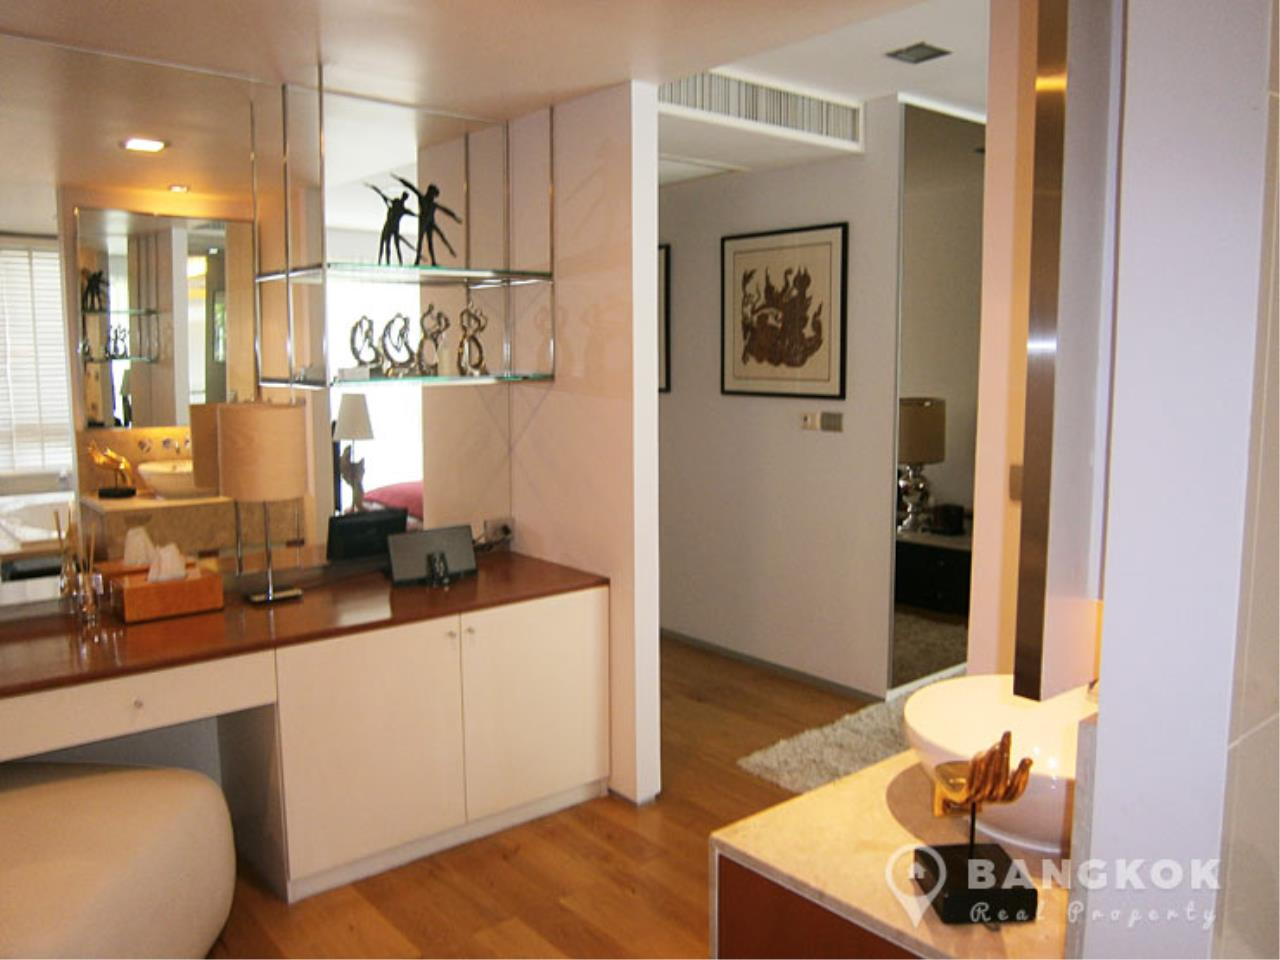 Bangkok Real Property Agency's Ficus Lane | A Fabulous Spacious 3 Bed 4 Bath Duplex near BTS 28